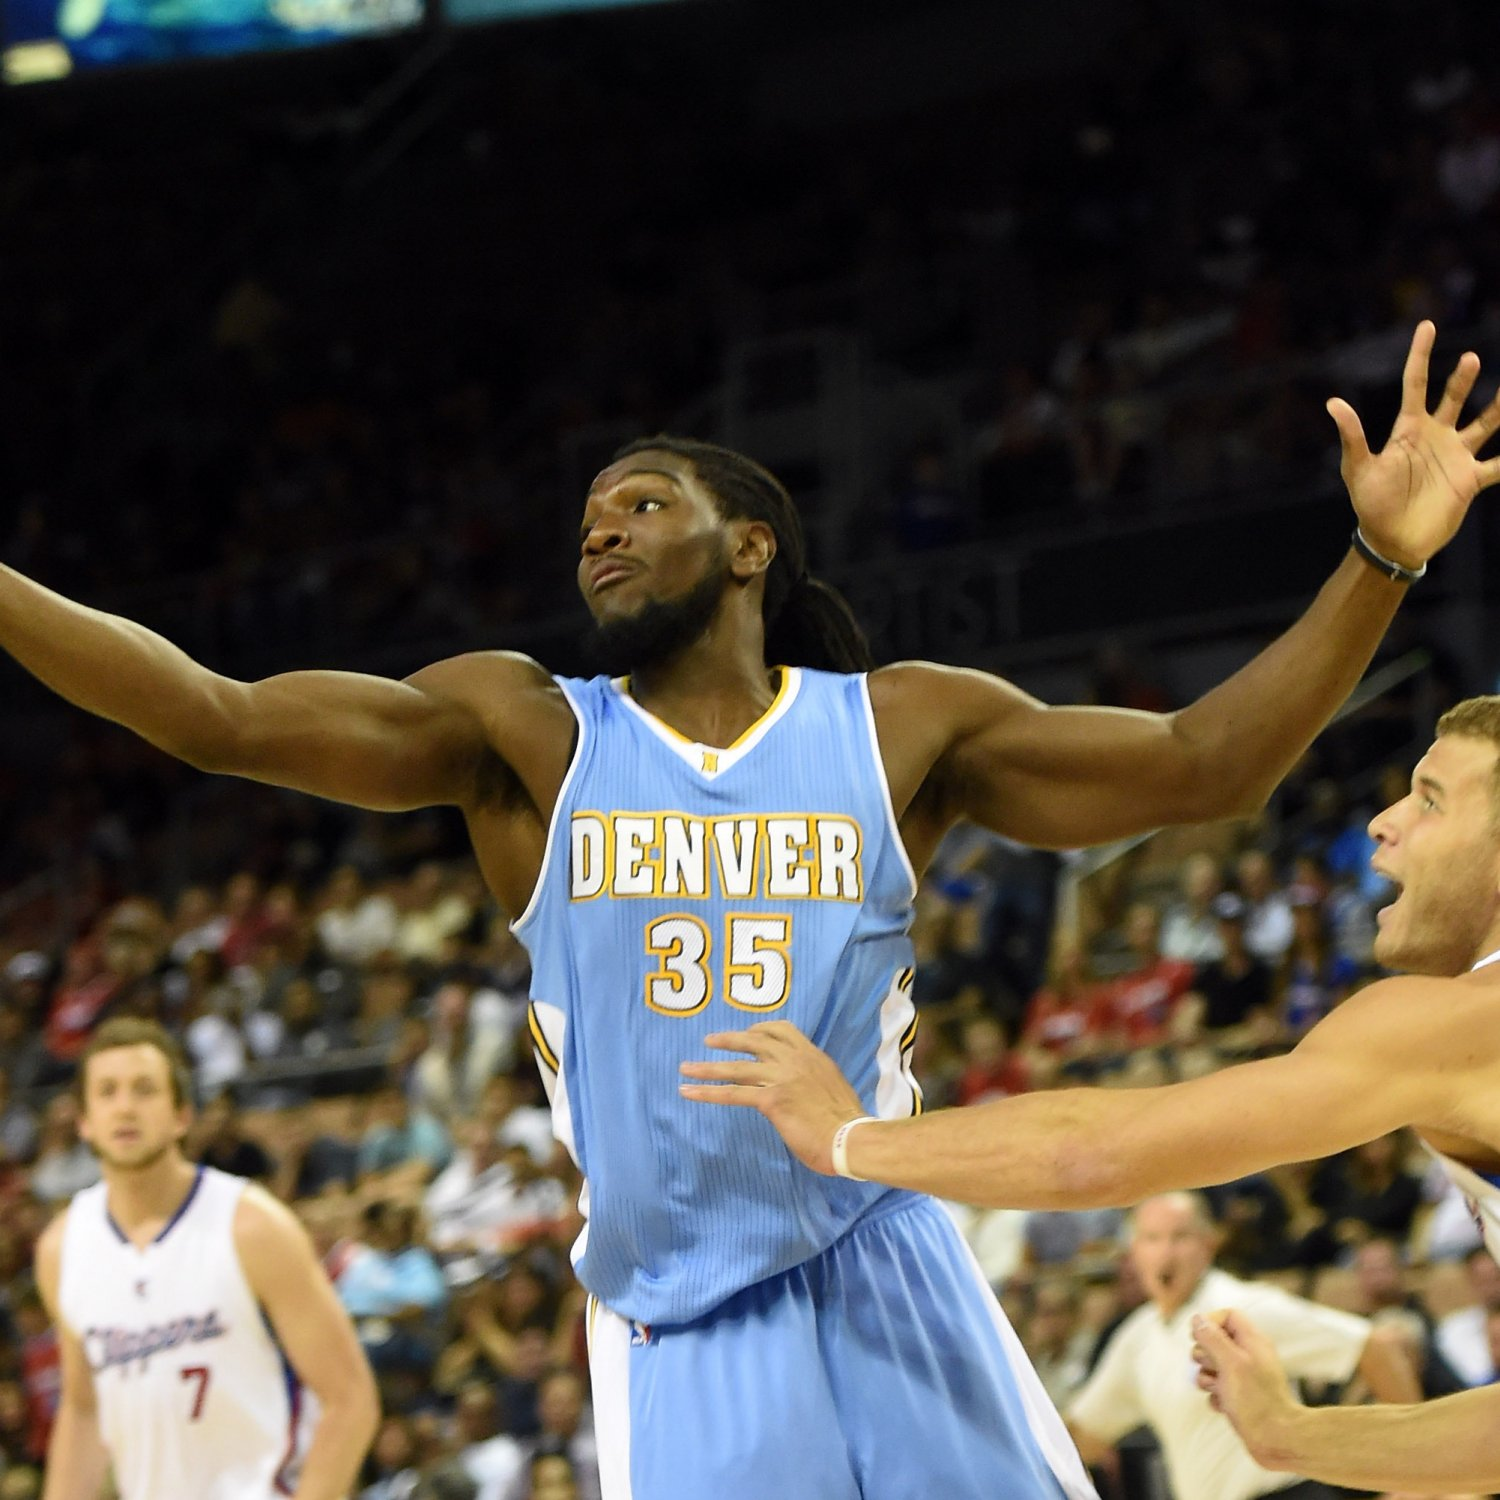 Denver Nuggets Predictions: Denver Nuggets Vs. Los Angeles Clippers 10/18/14: Video